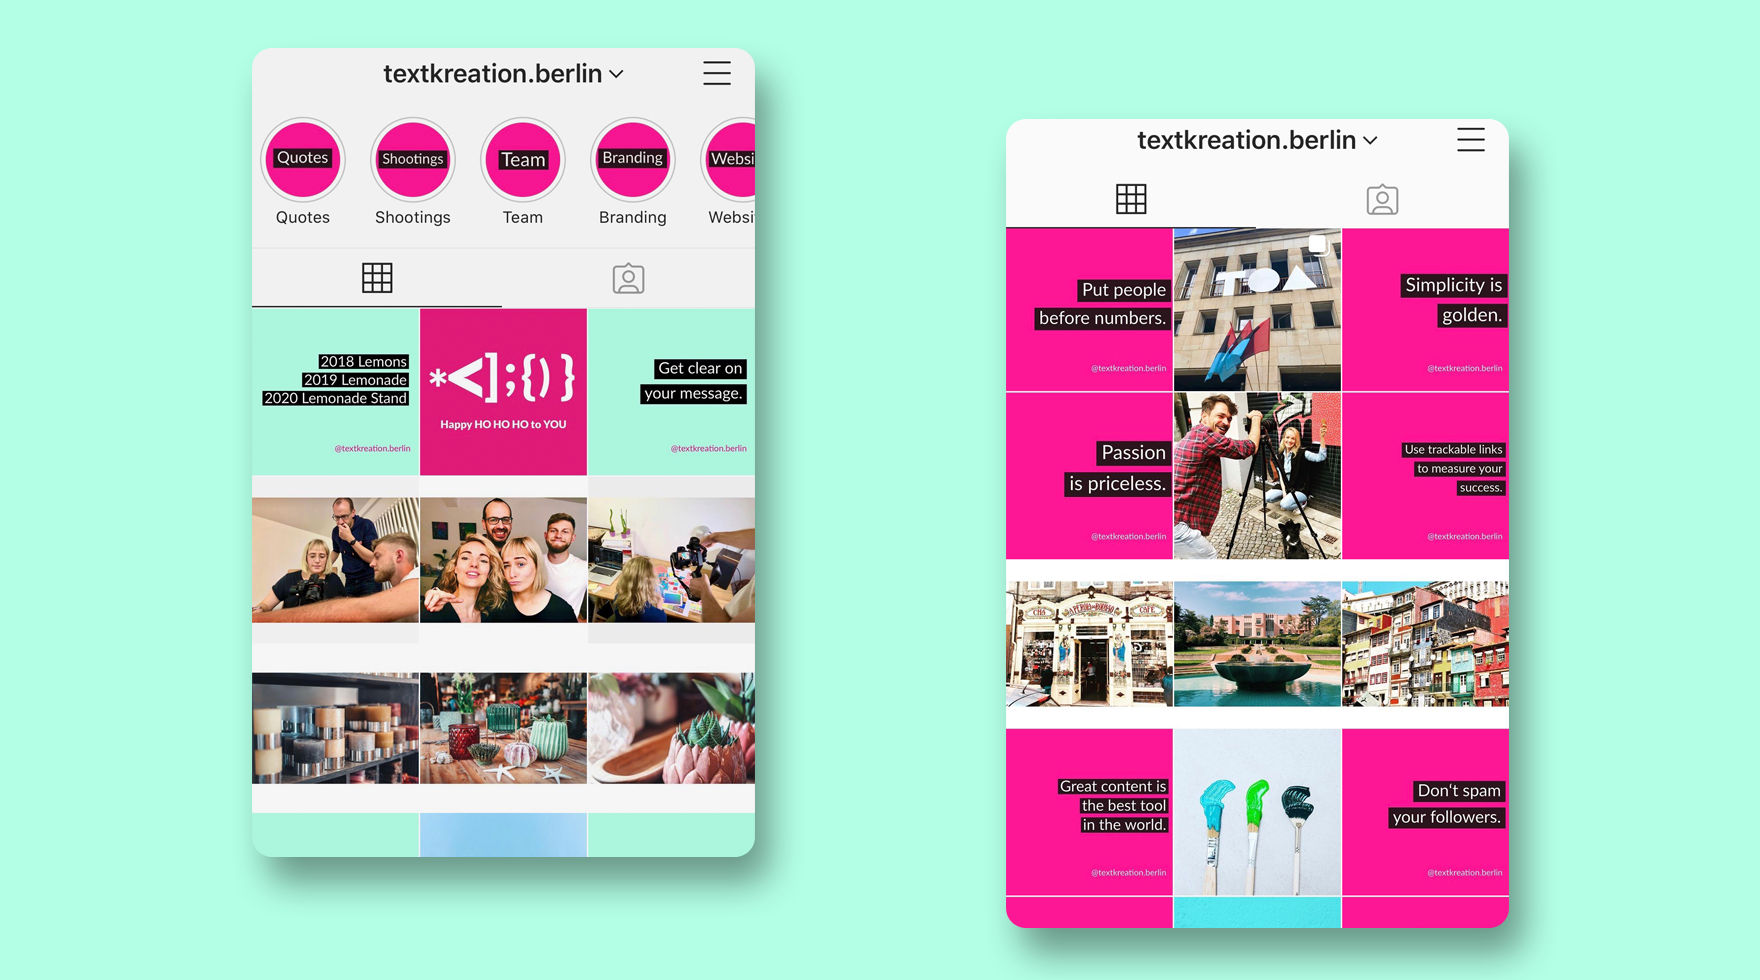 instagram-textkreation-berlin-agentur-social-media